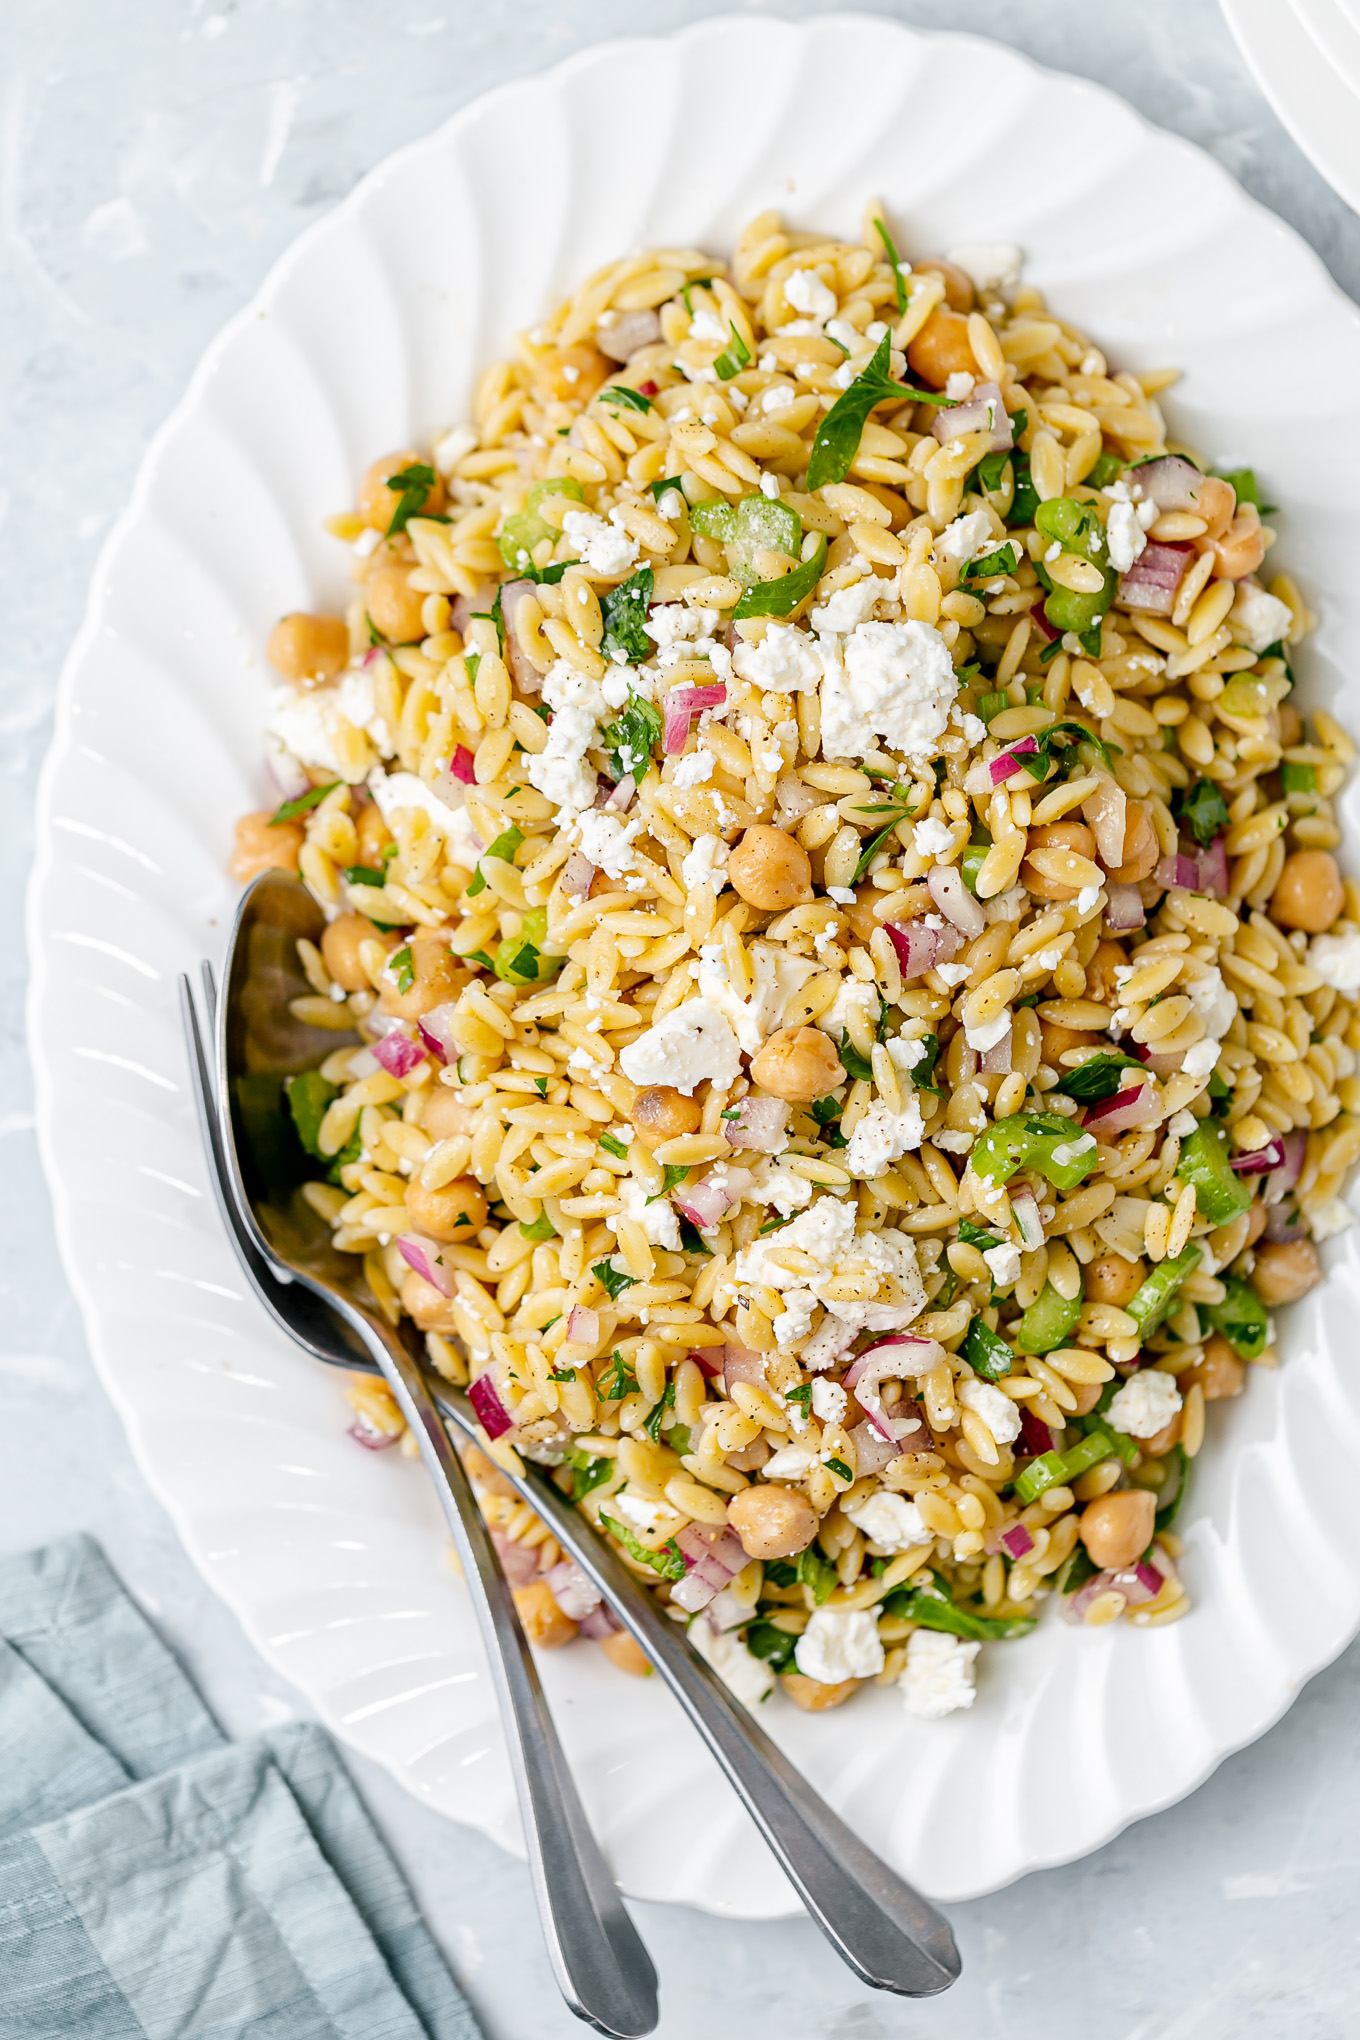 Minted Orzo Salad Recipe with Chickpeas and Feta Cheese - this deliciously easy vegetarian side dish is my most requested! It's loaded with fresh flavor from herbs and a bright lemon vinaigrette and it tastes amazing hot or cold so feel free to make ahead of time!